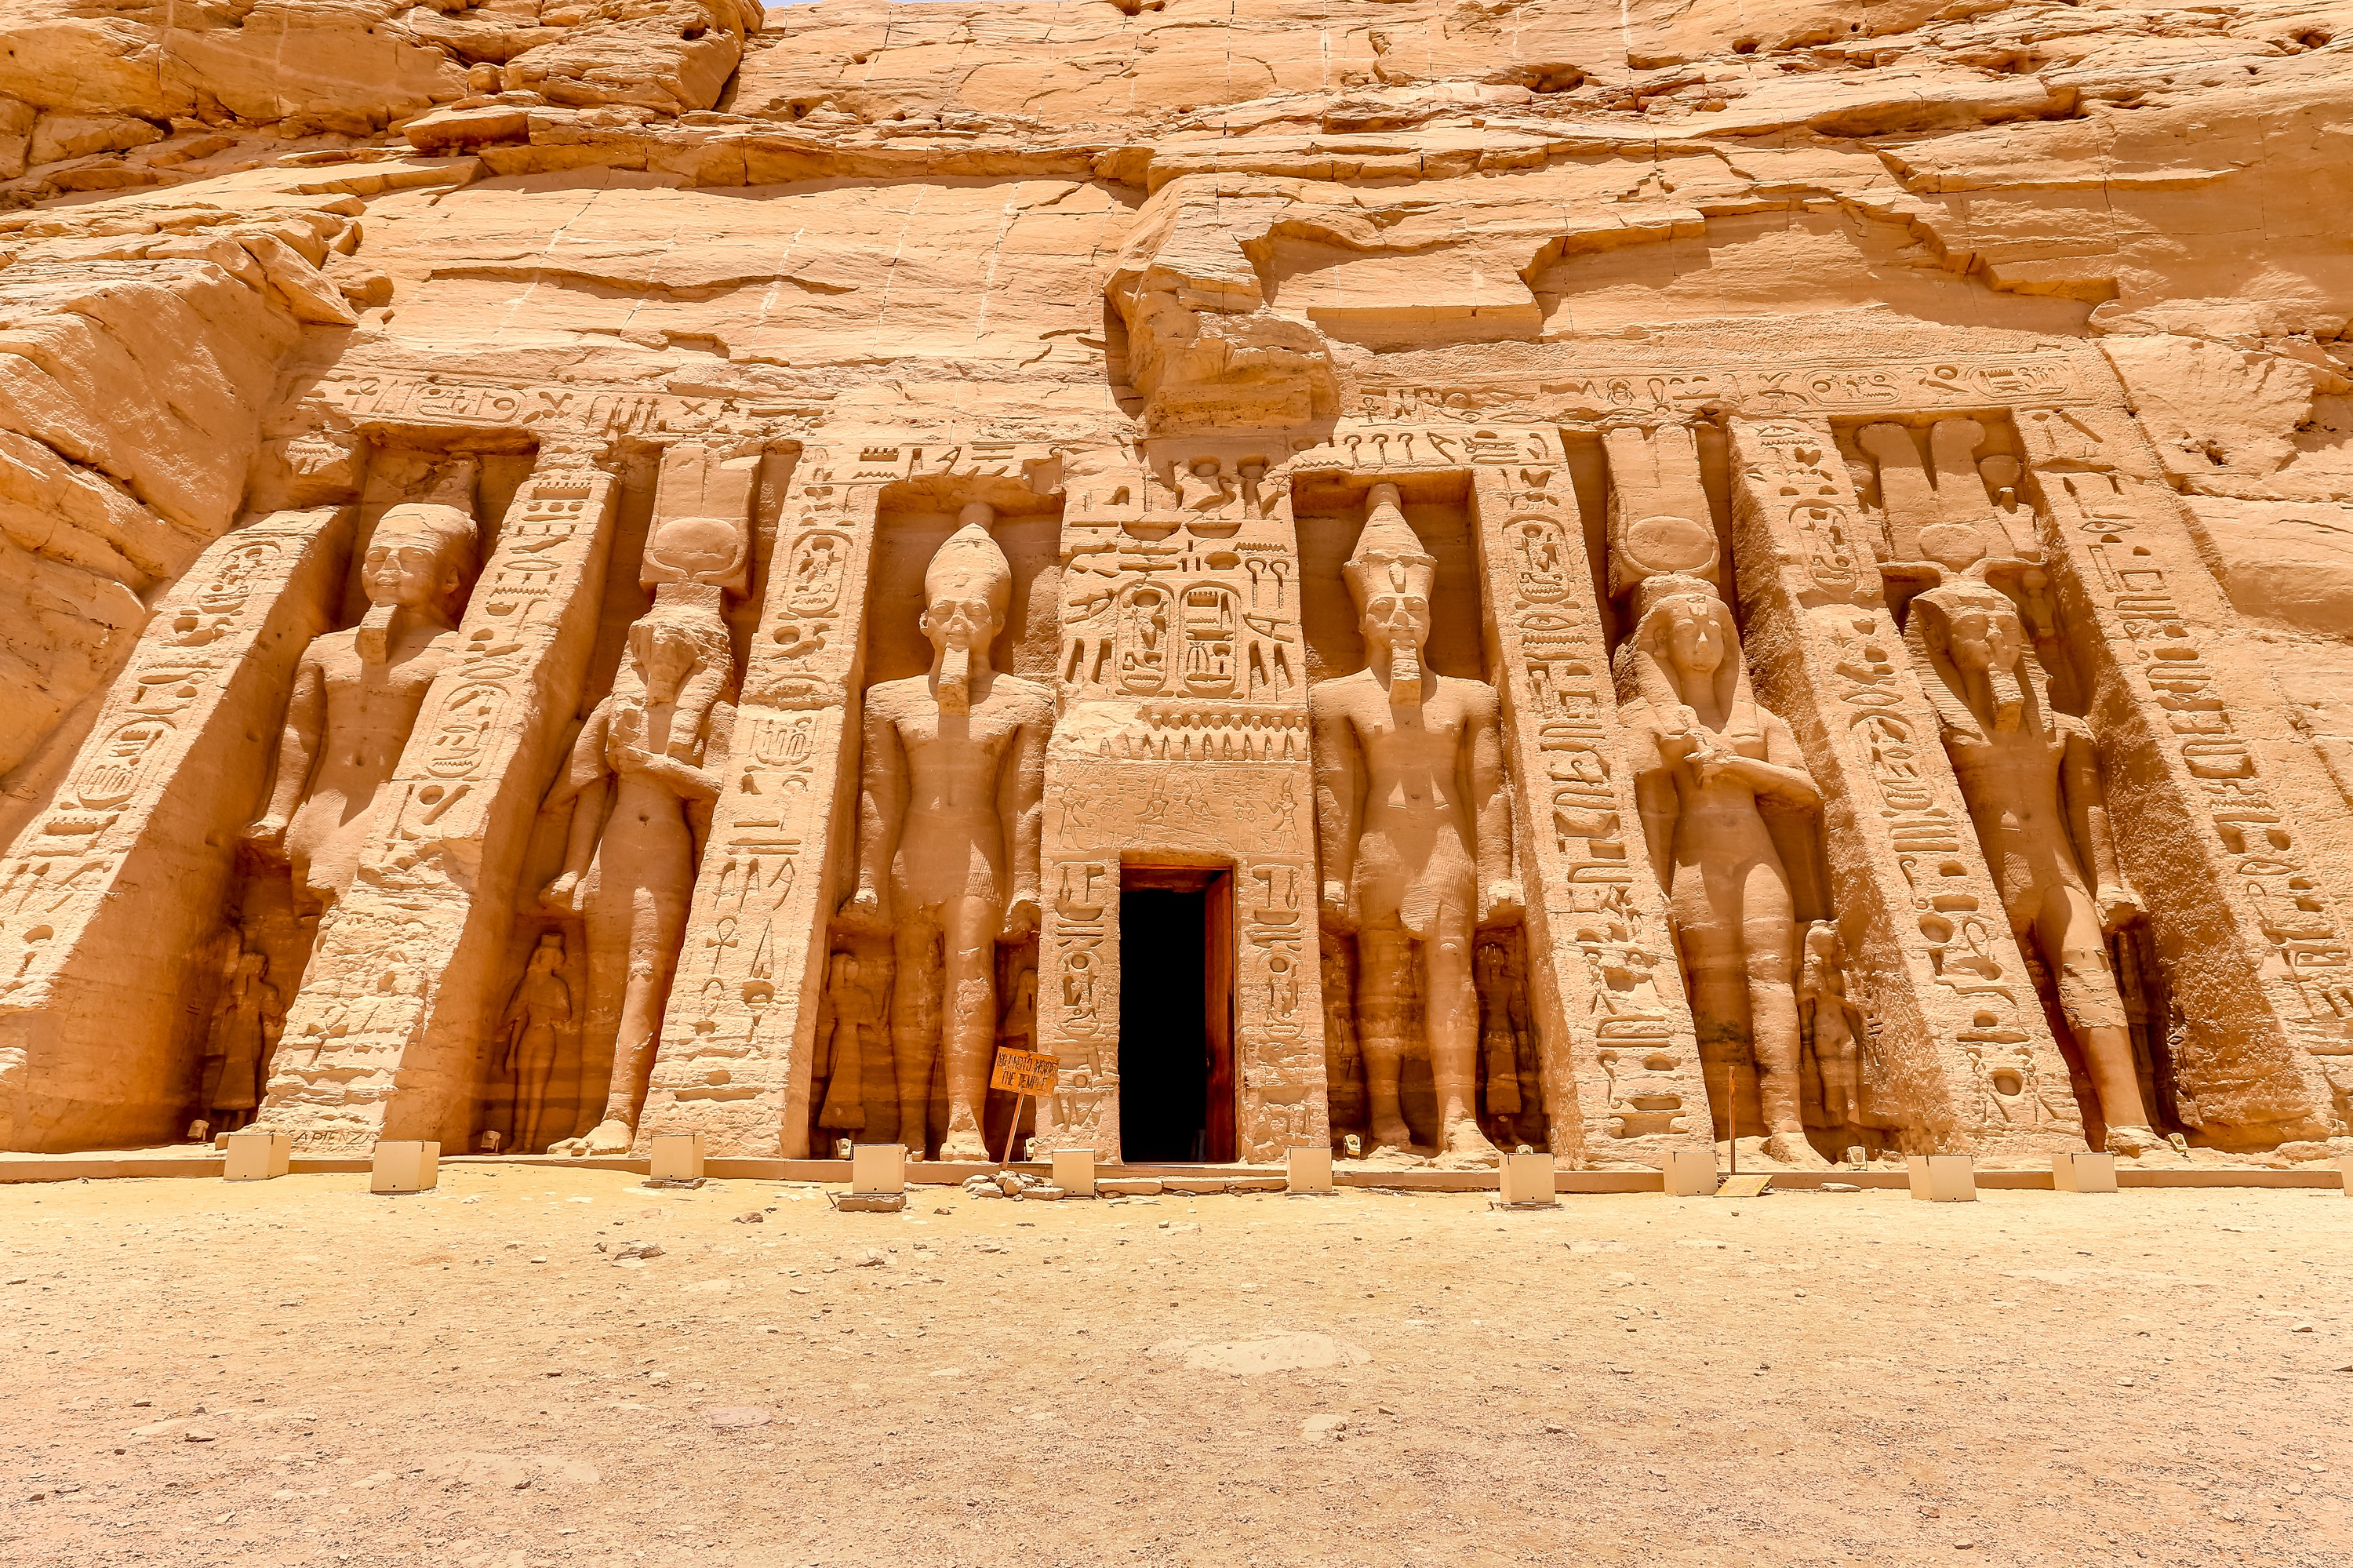 The Temple of Hathor and Nefertari